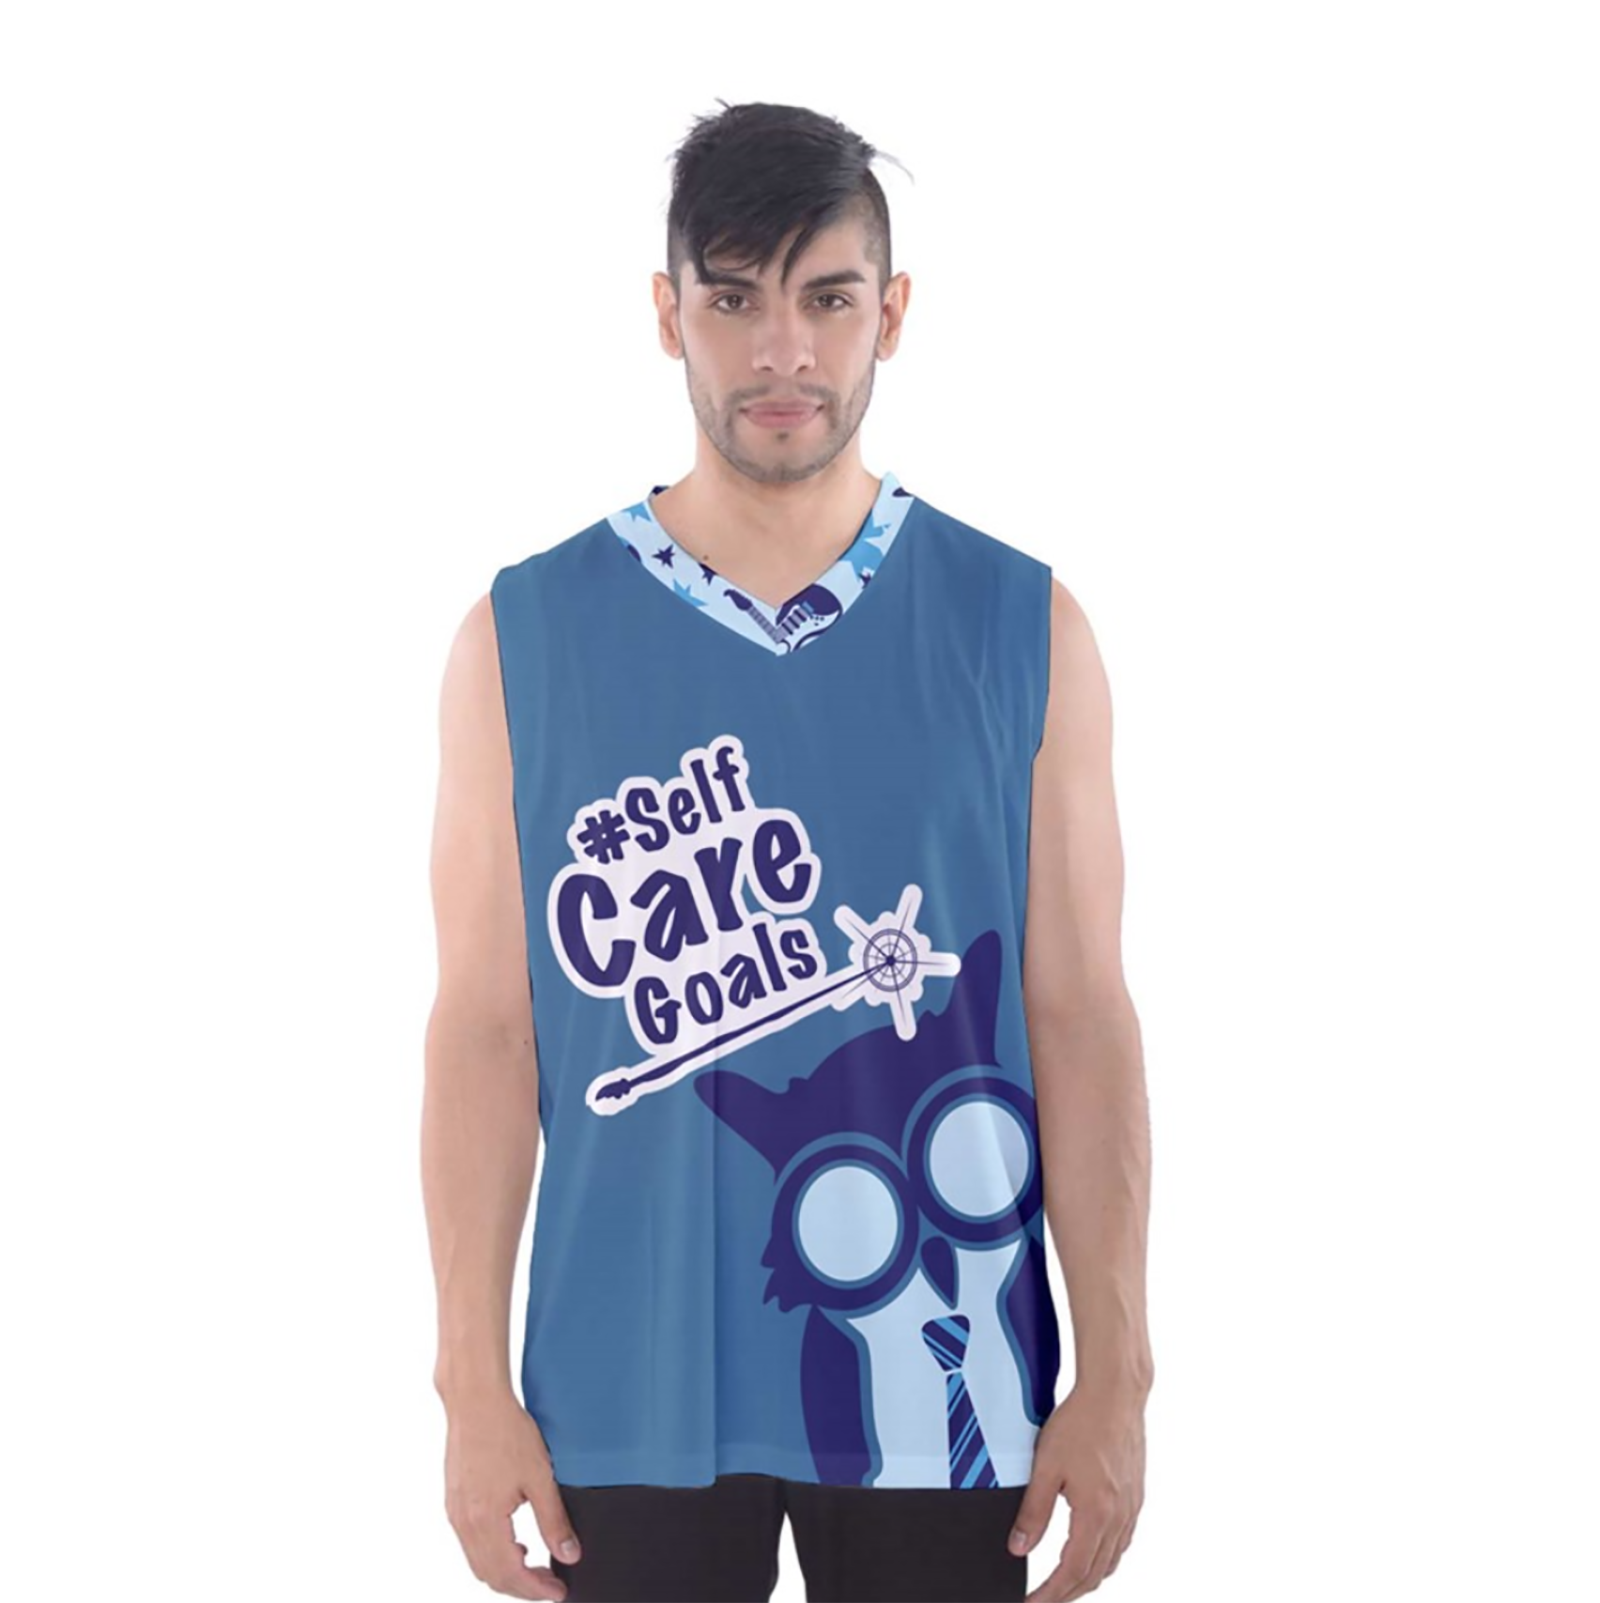 Self-Care Men's Tank Top (Blue Solid Background)